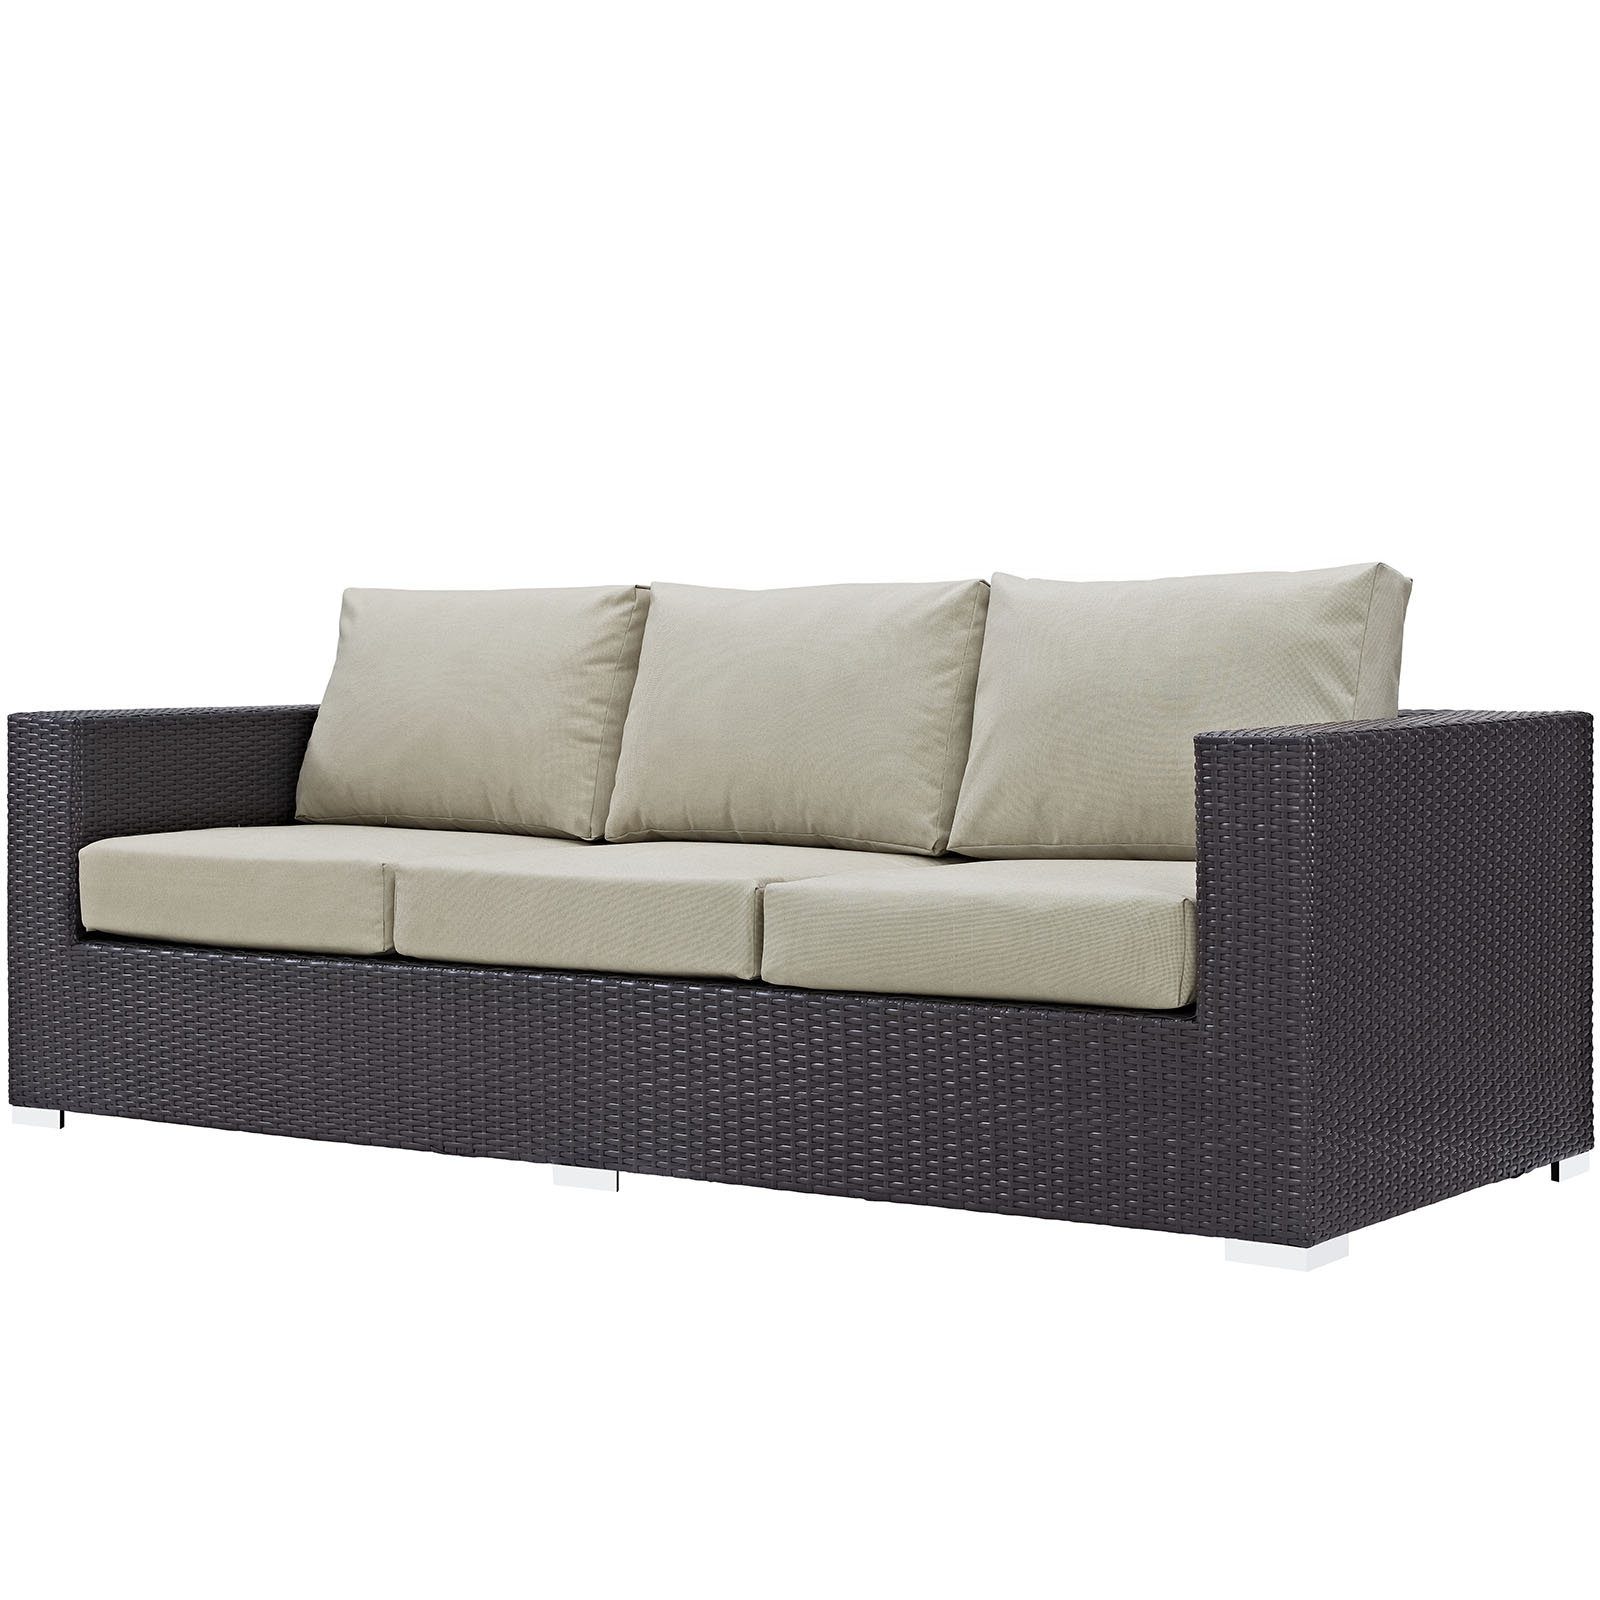 Allmodern Inside Loggins Patio Sofas With Cushions (View 1 of 20)